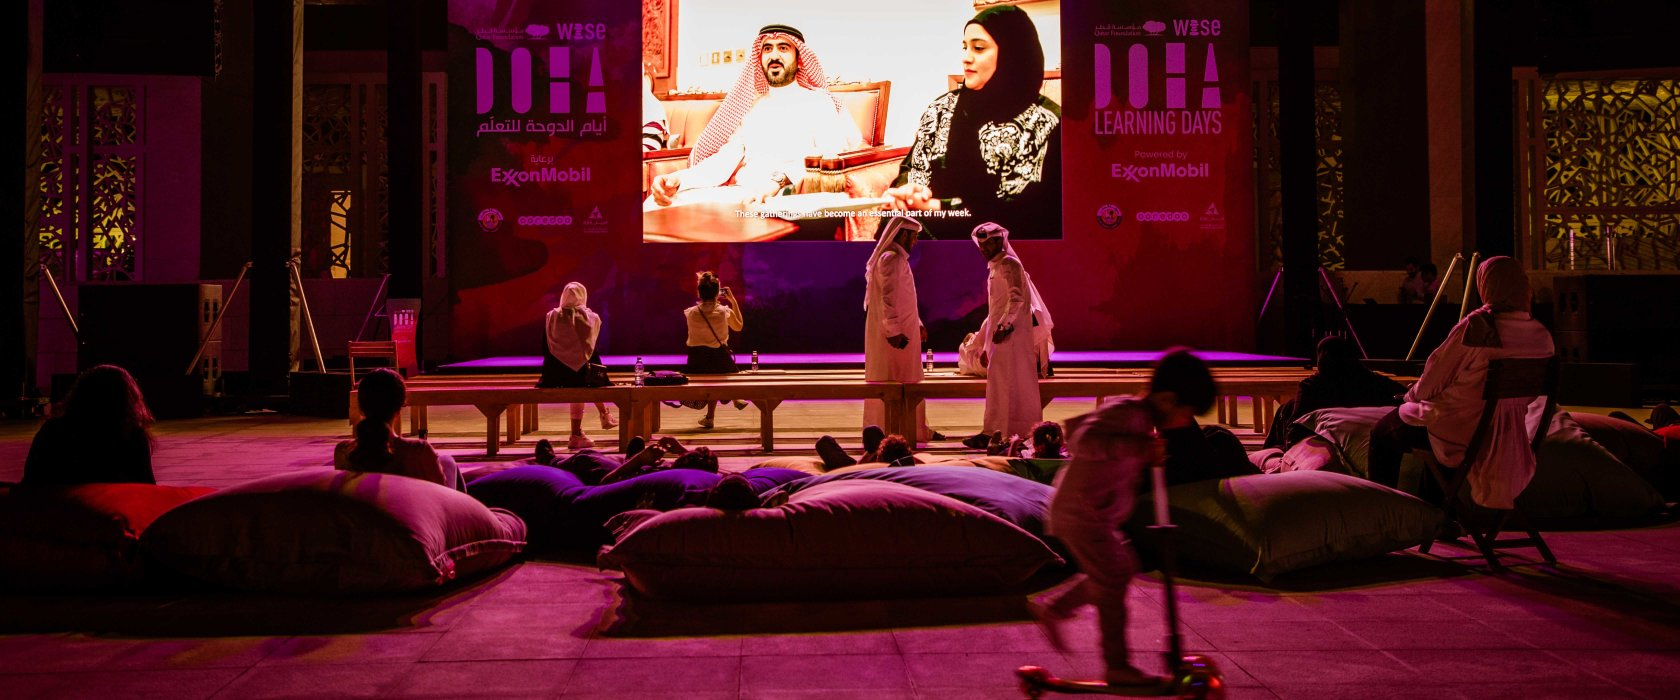 Life in Qatar portrayed on screen